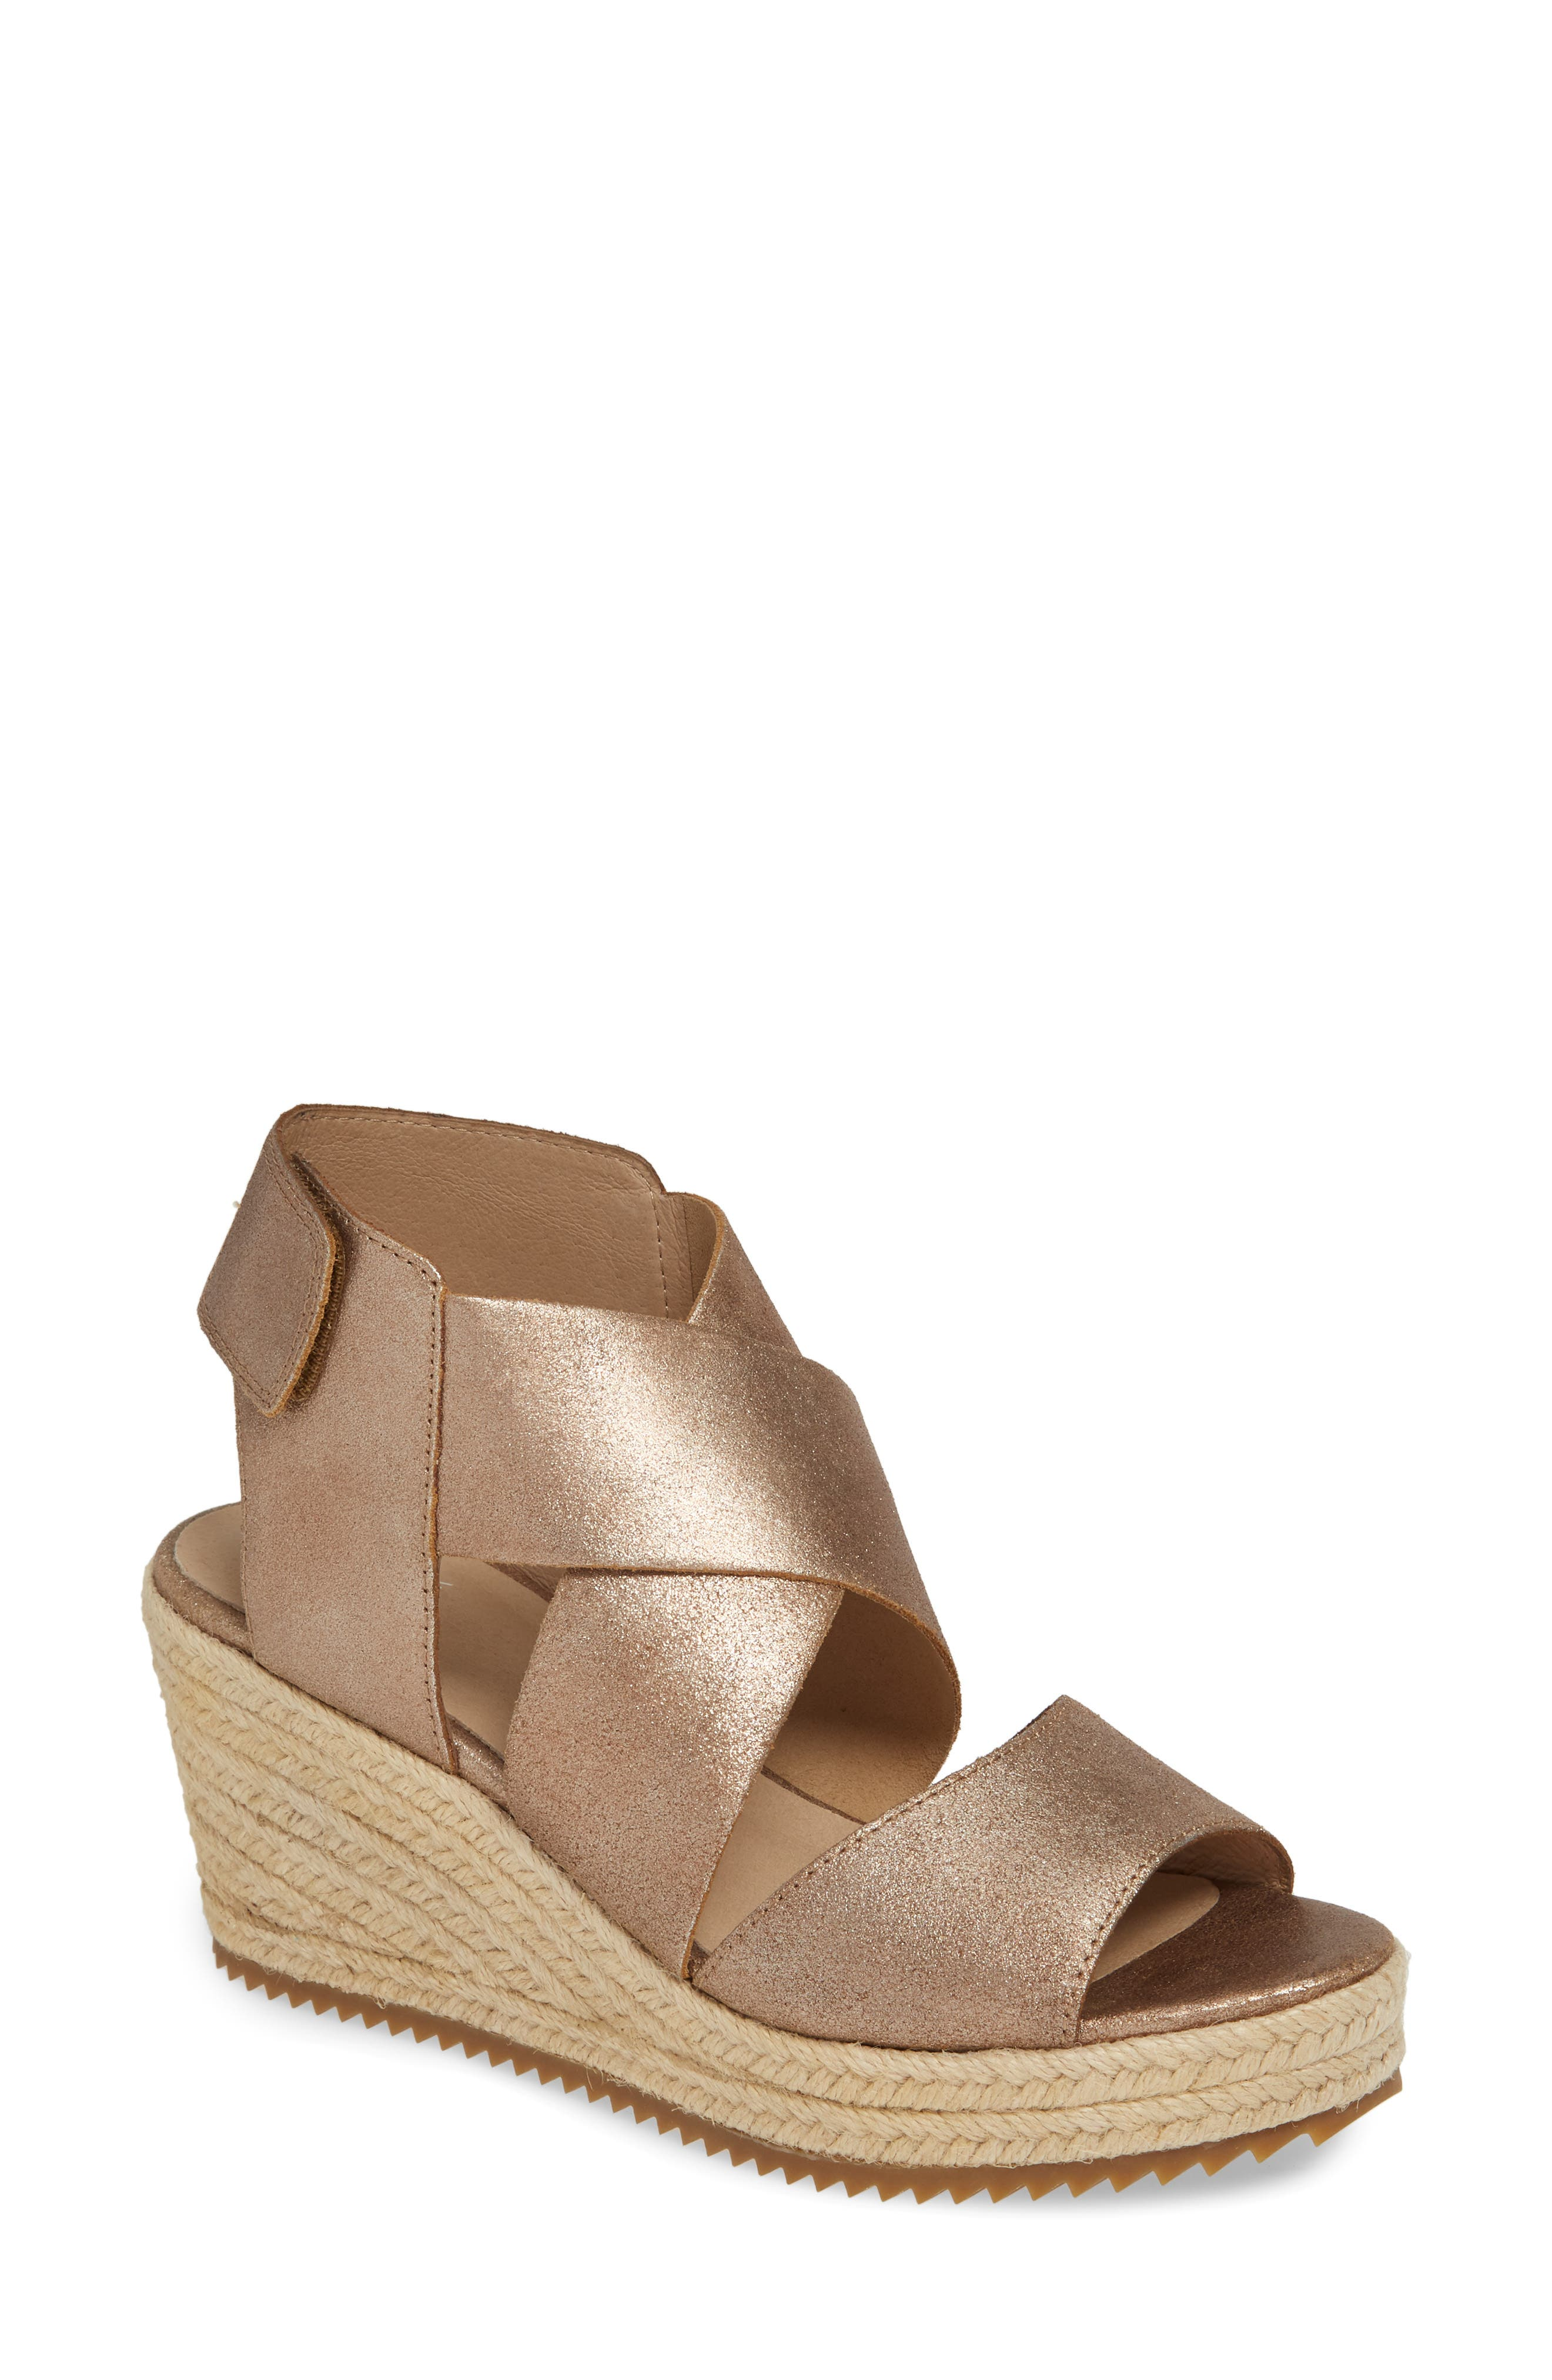 EILEEN FISHER 'Willow' Espadrille Wedge Sandal, Main, color, BRONZE/ BRONZE LEATHER